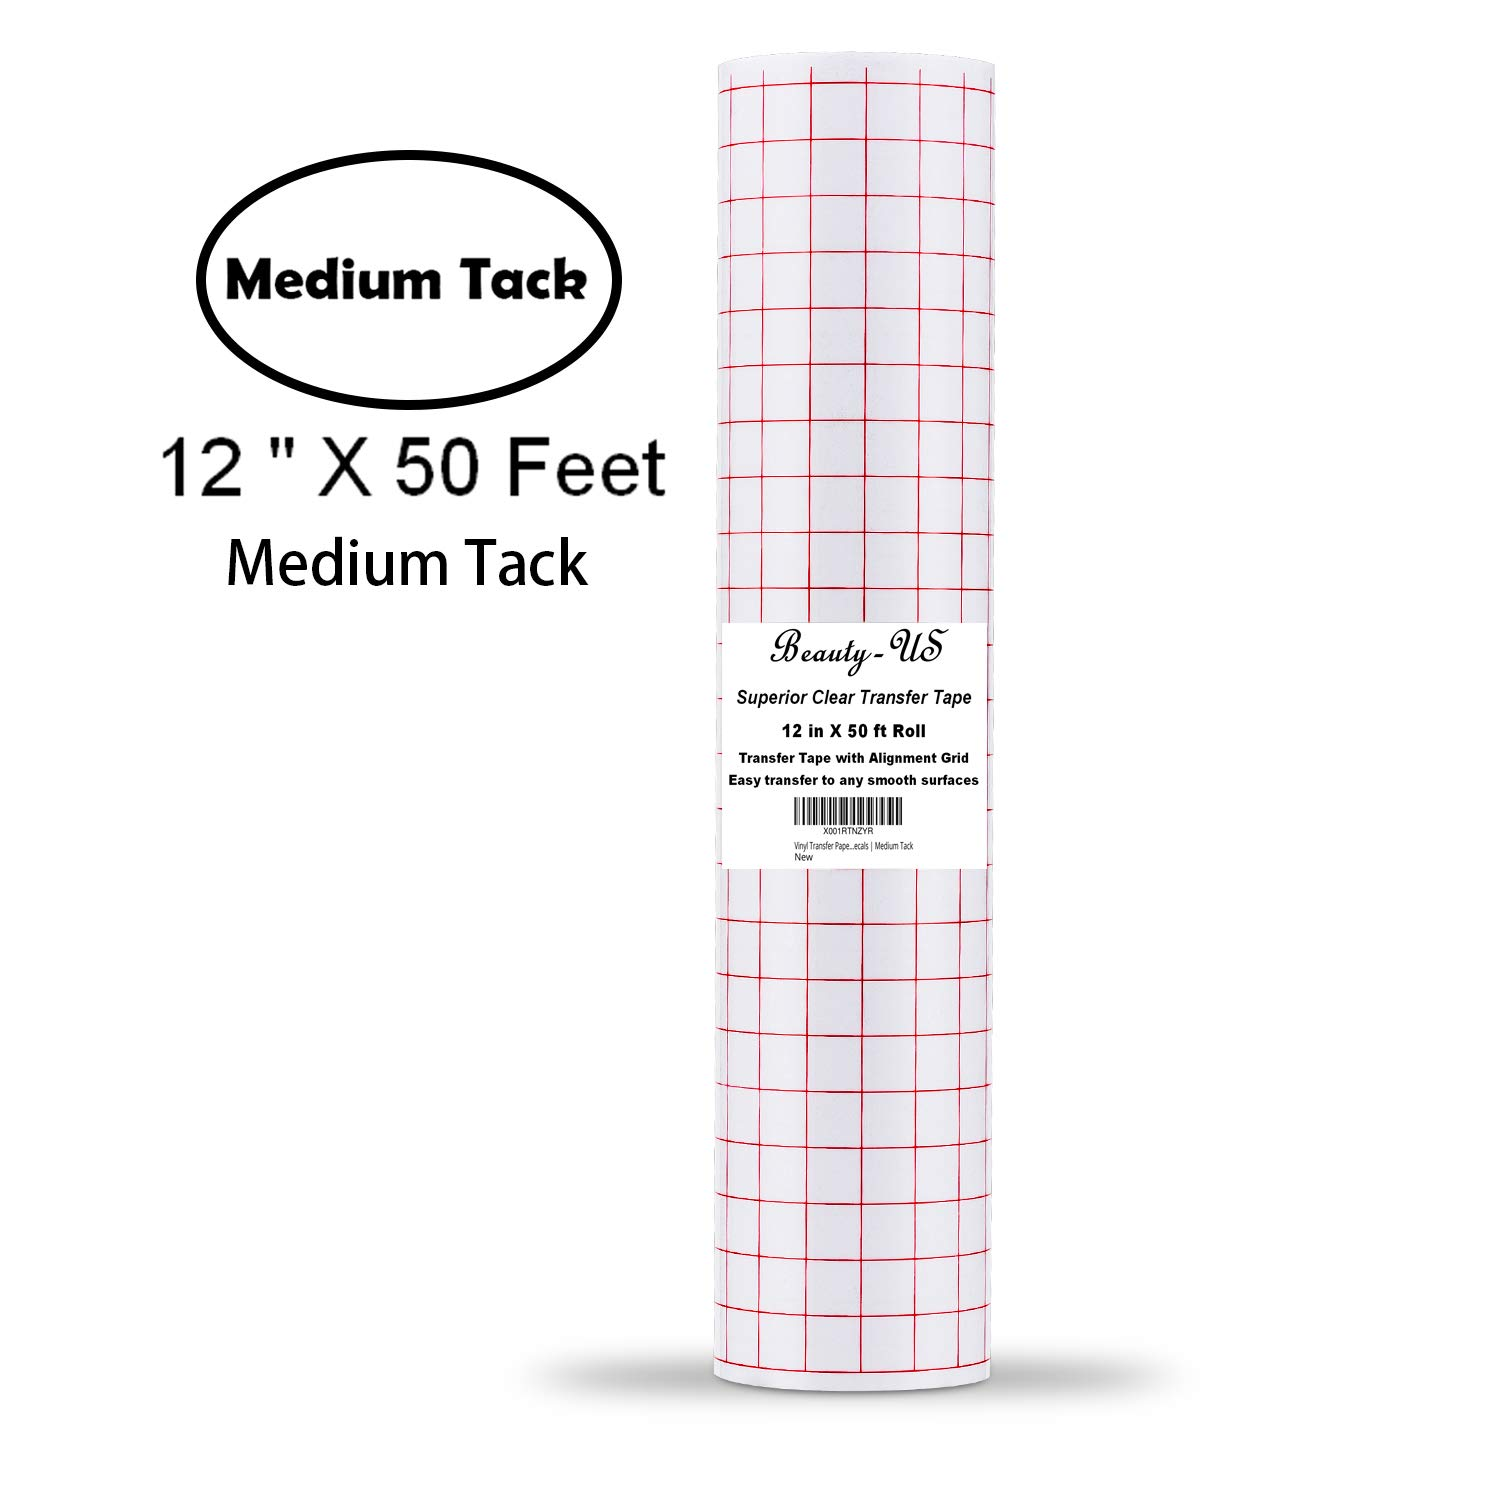 Vinyl Transfer Paper Tape Roll 12 x 50 FT Clear w/Red Alignment Grid | Application Tape Perfect for Cricut Cameo Silhouette Self Adhesive Oracal for Signs Crafts Stickers Decals | Medium Tack JANDJPACKAGING Transfer Tape - 004